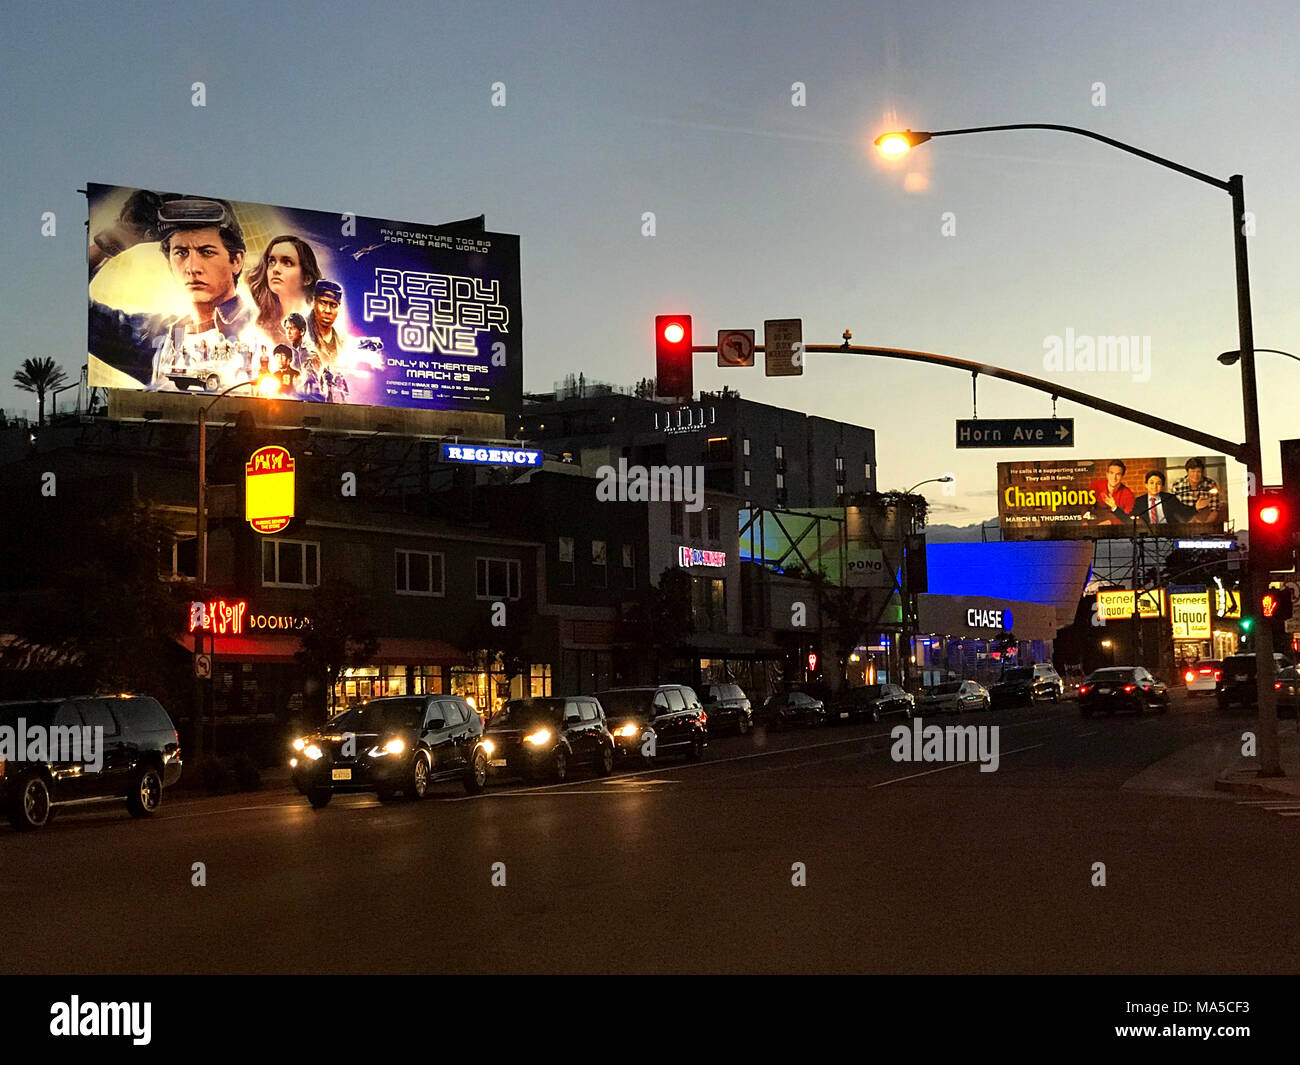 Billboard for the Steven Spielberg movie Ready Player One on the Sunset Strip in Los Angeles, CA - Stock Image